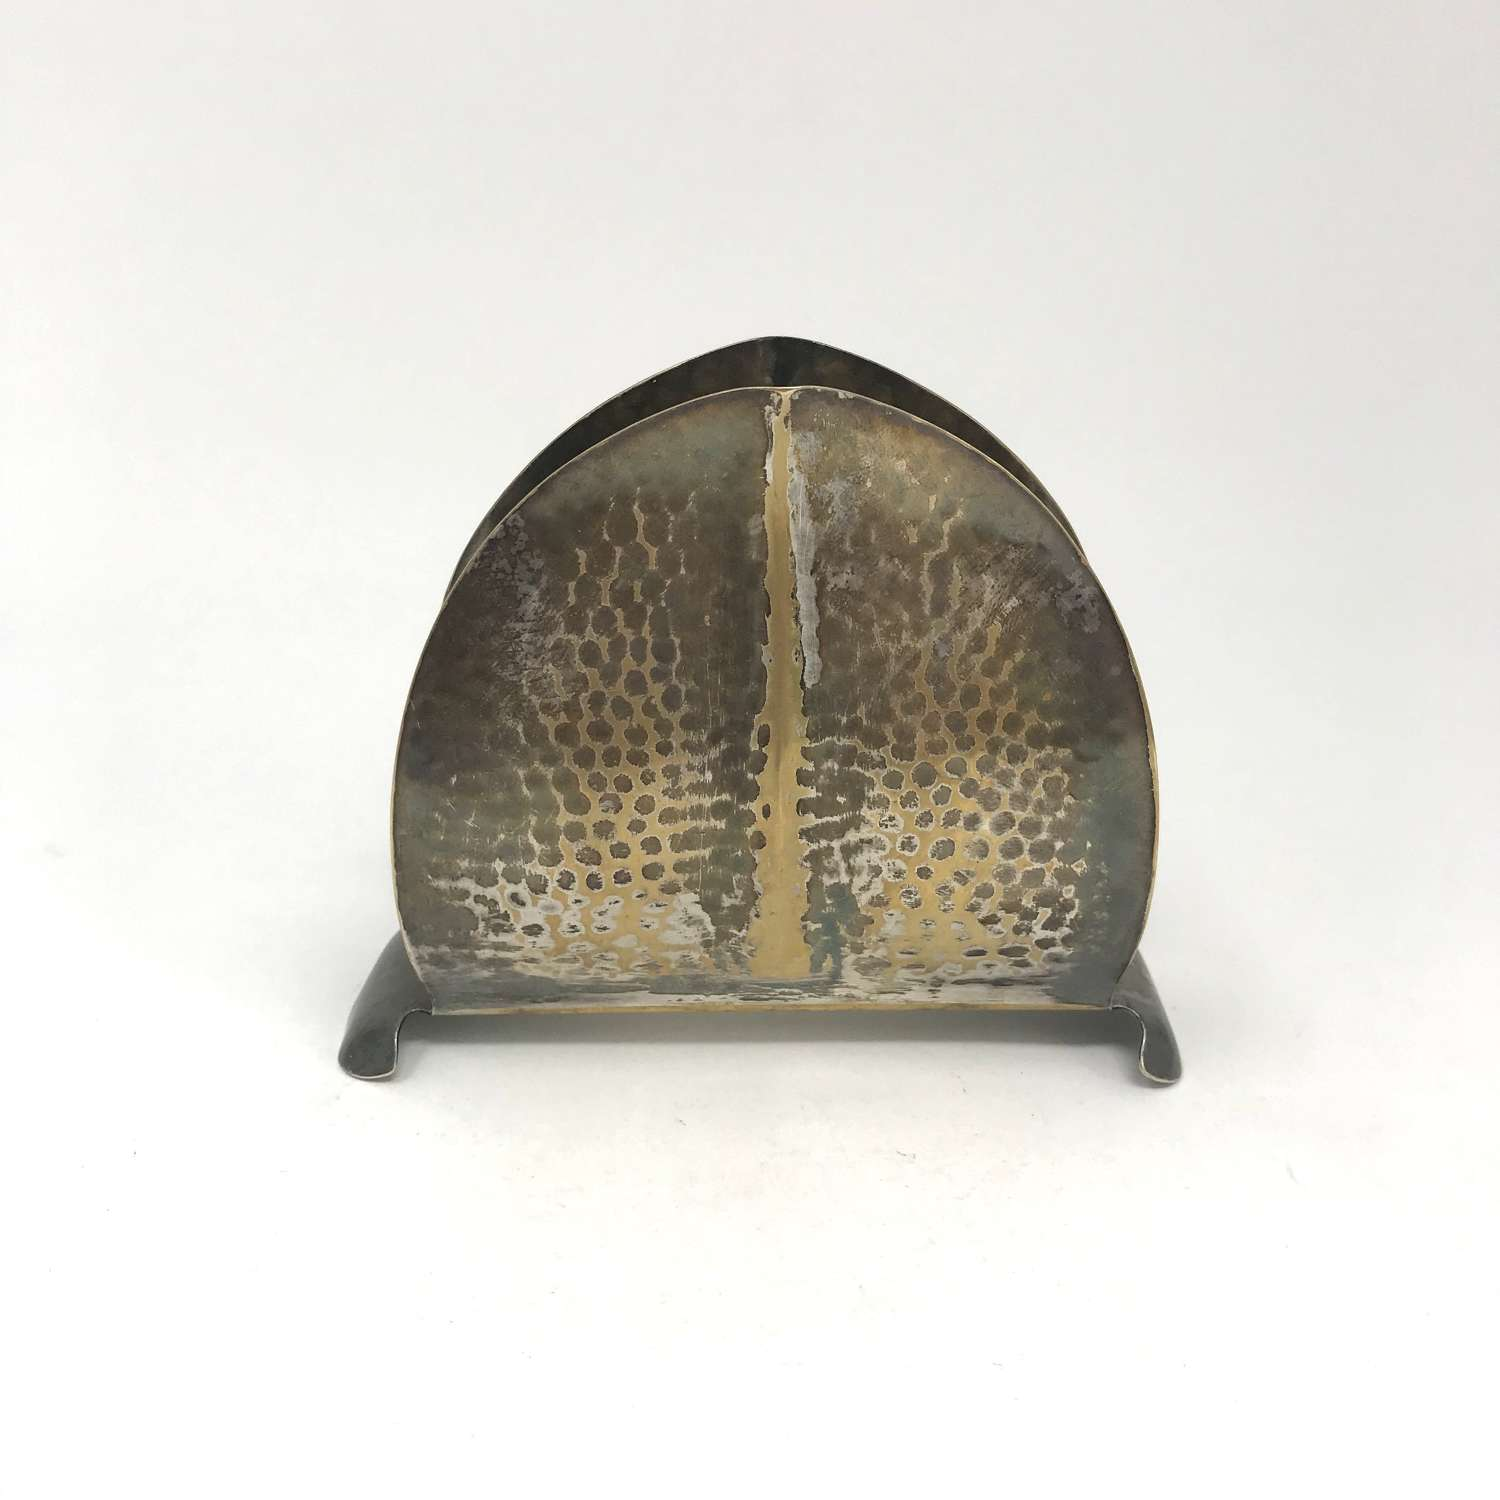 Amsterdam School Patinated Metal Letter Holder 1920s No. 1